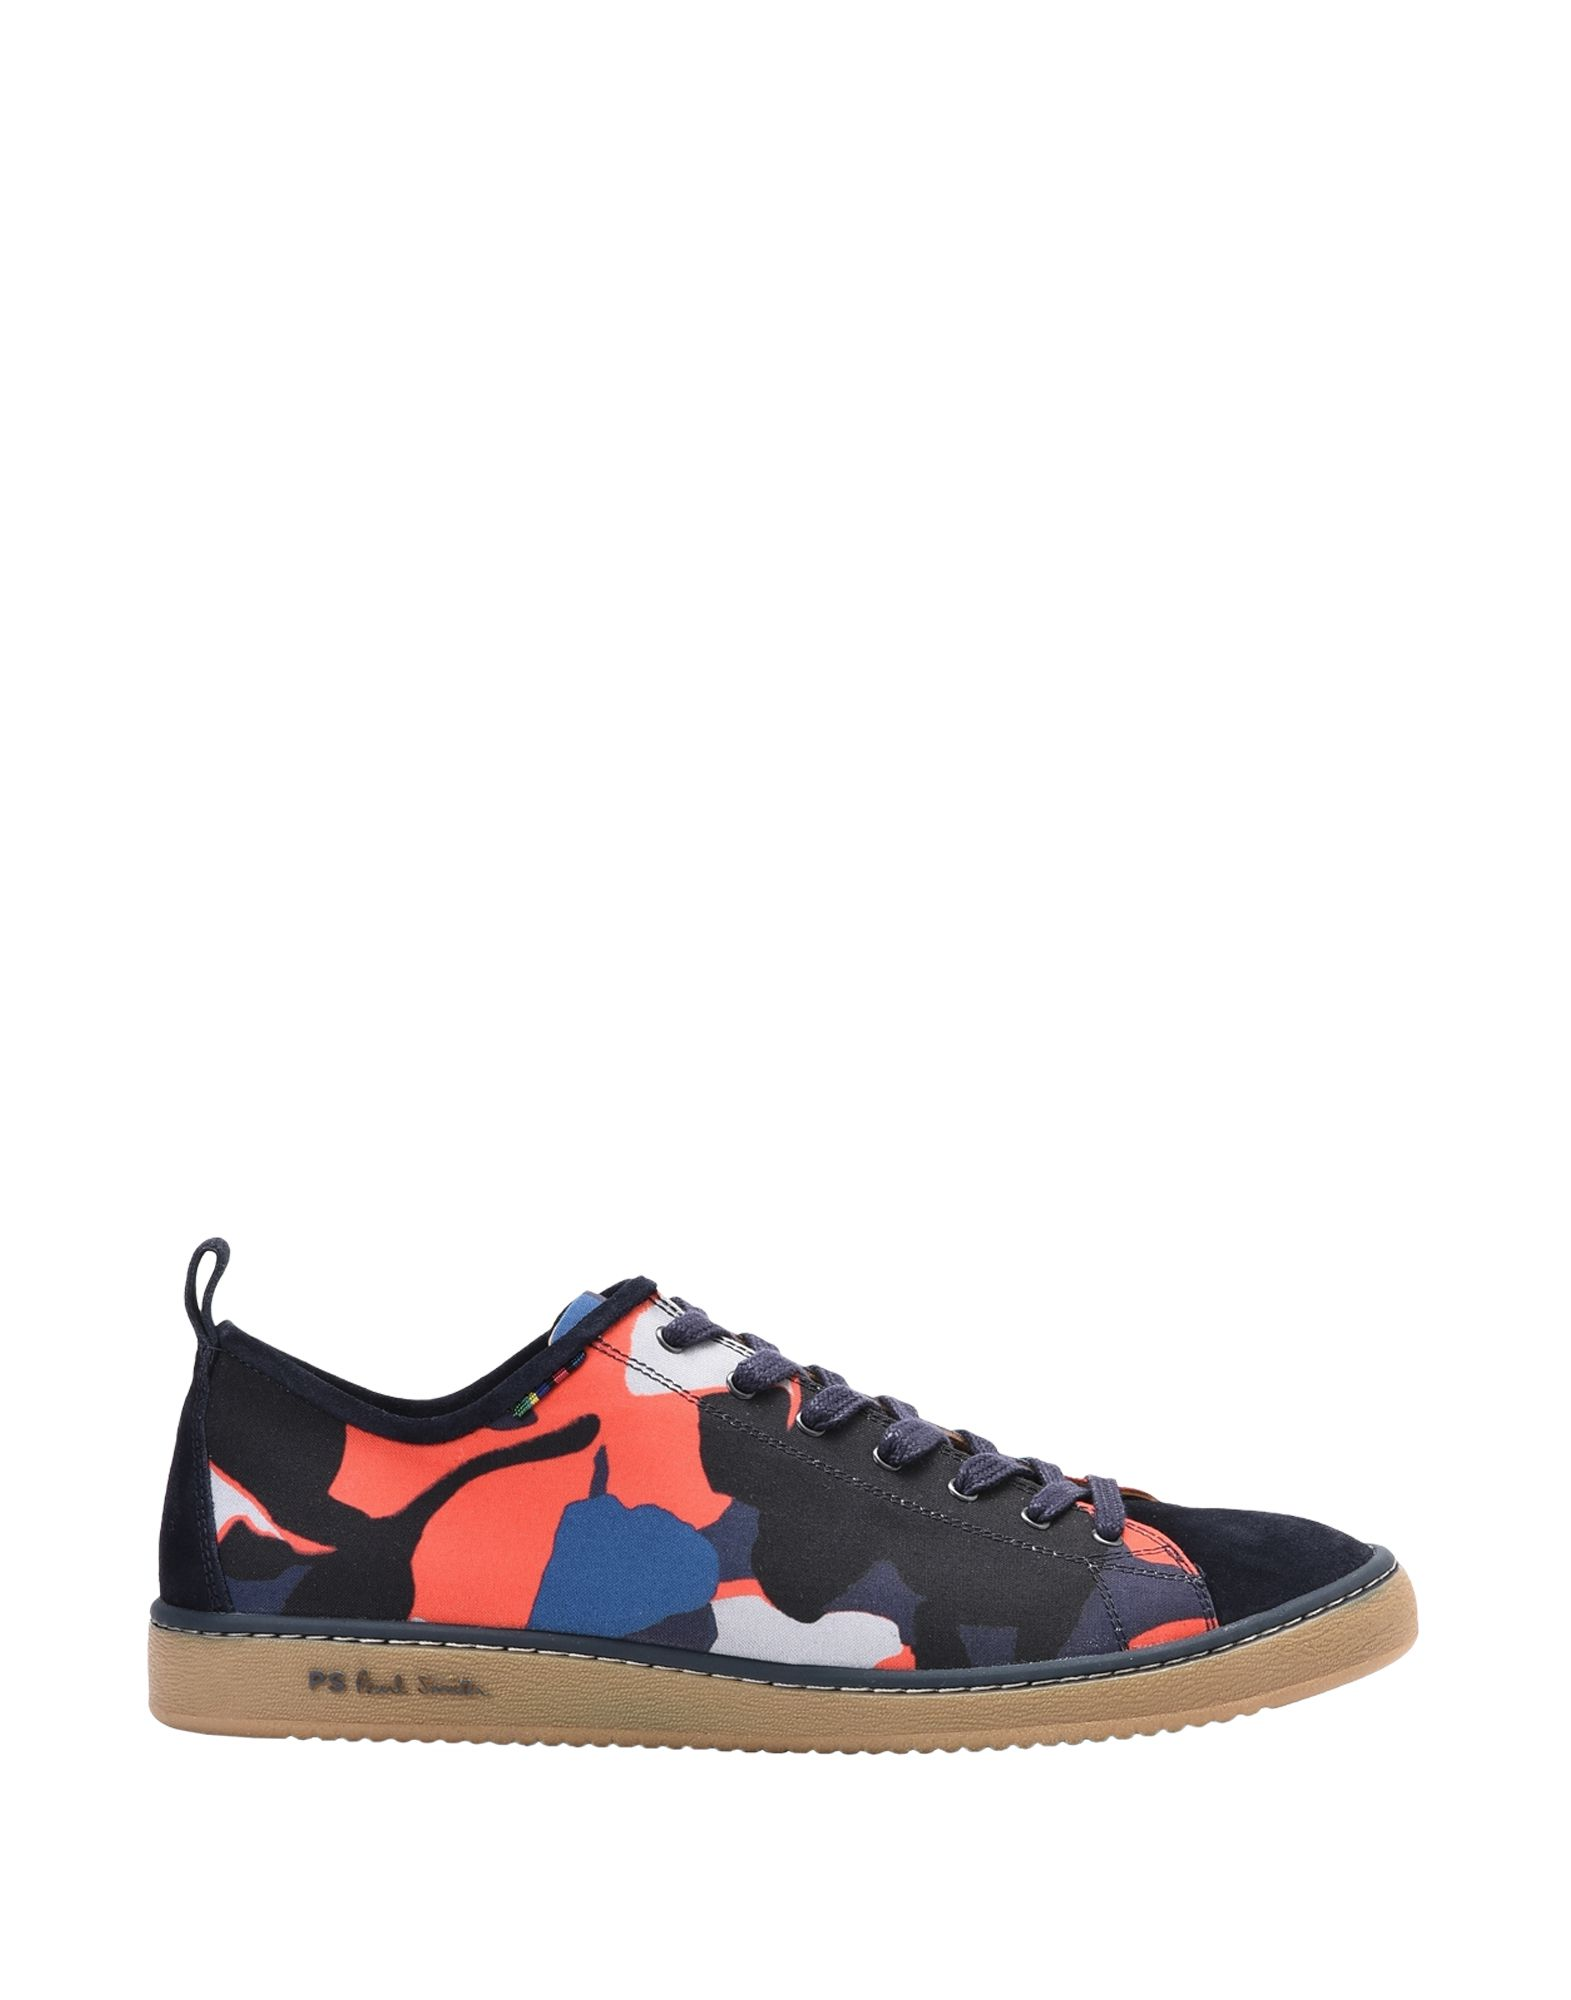 ps par paul smith     chaussure miyata Rouge  camo - tennis - hommes ps par paul smith baskets en ligne le royaume 946d71